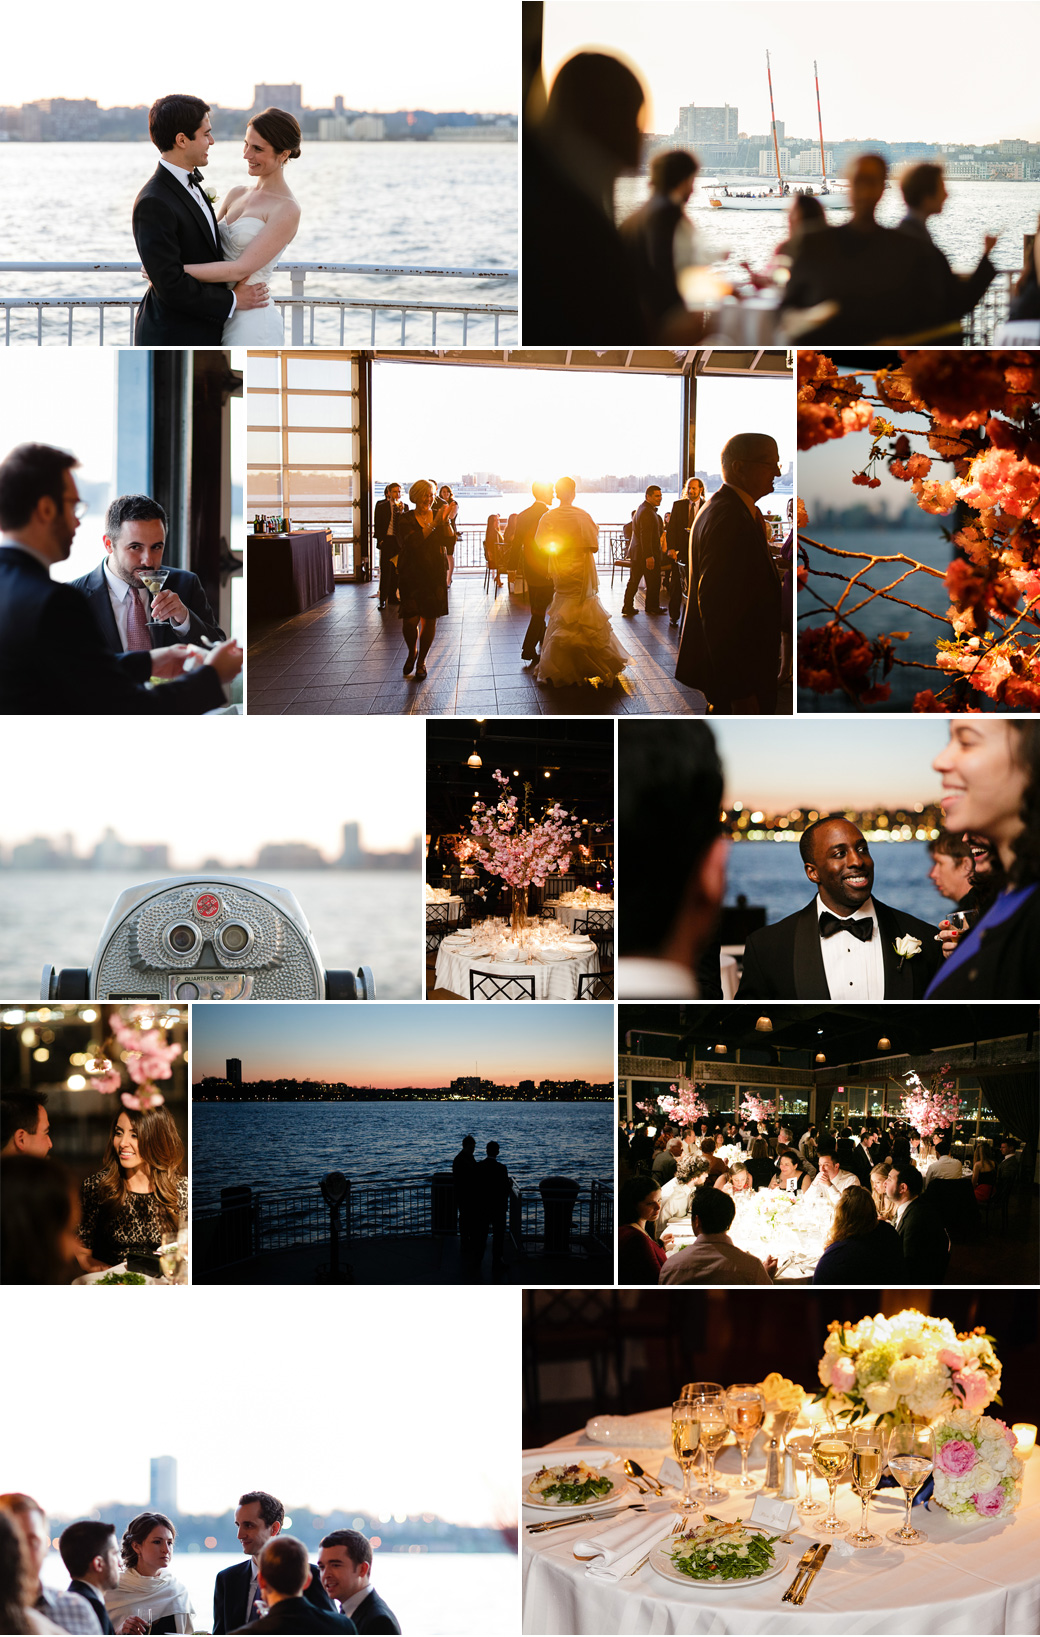 collage-lighthouse-chelsea-piers-01.jpg